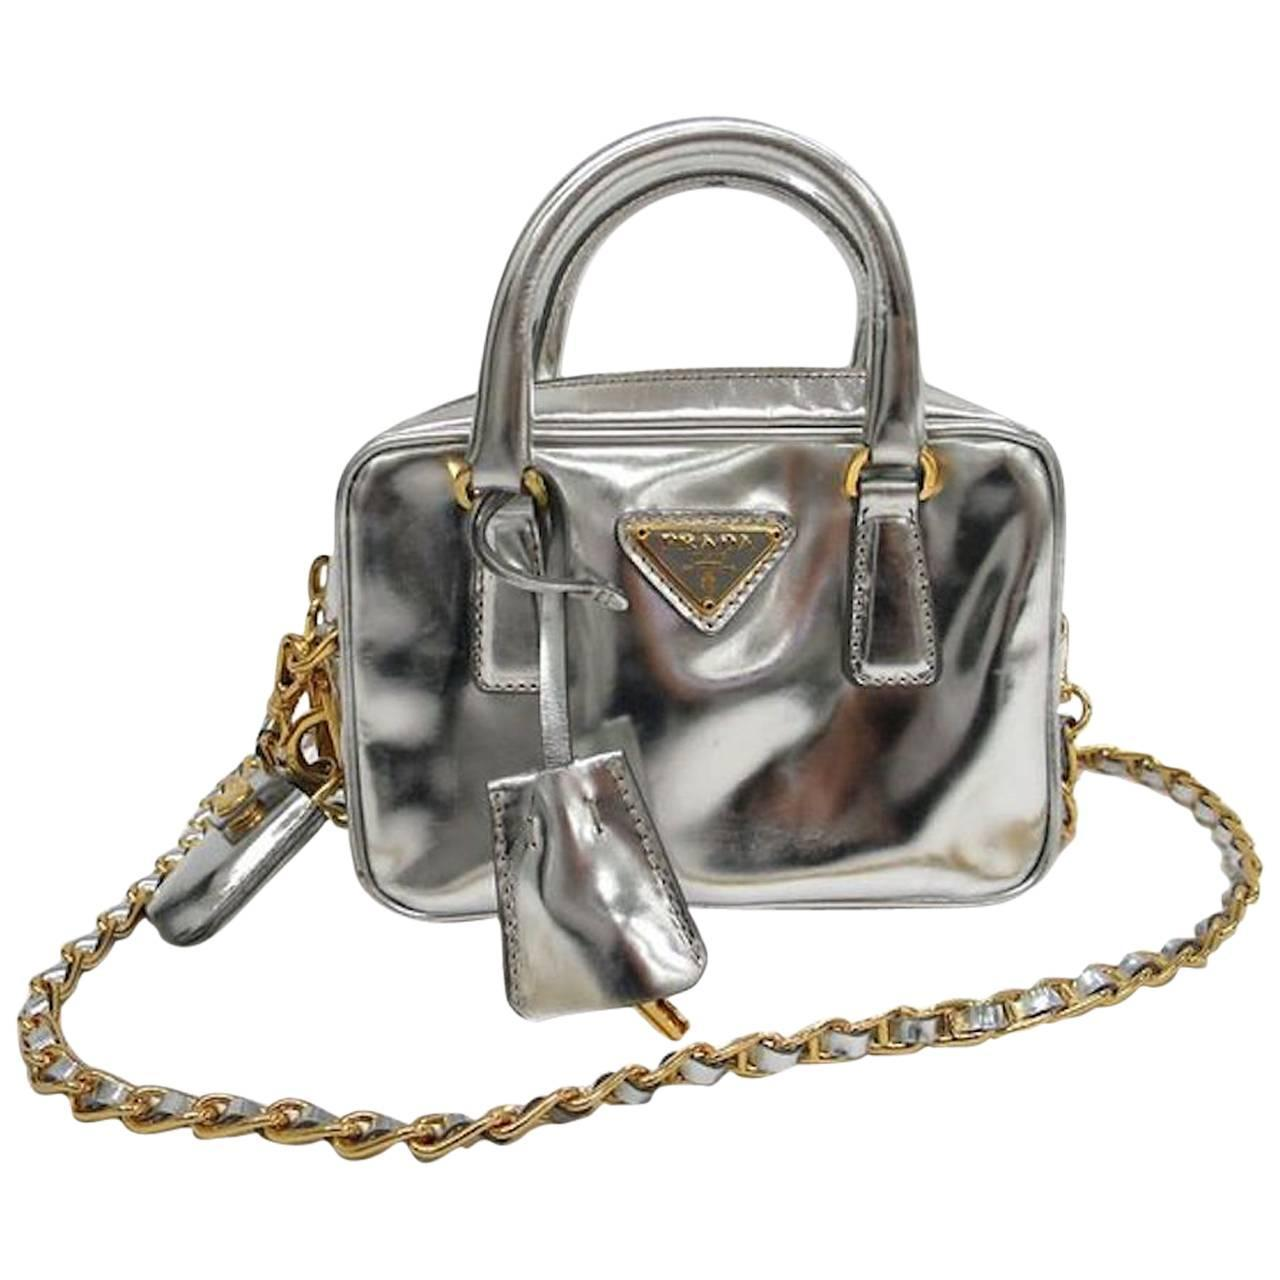 3f8a3a2bdf864 ... promo code for prada silver patent leather gold chain hw top handle  crossbody shoulder bag at